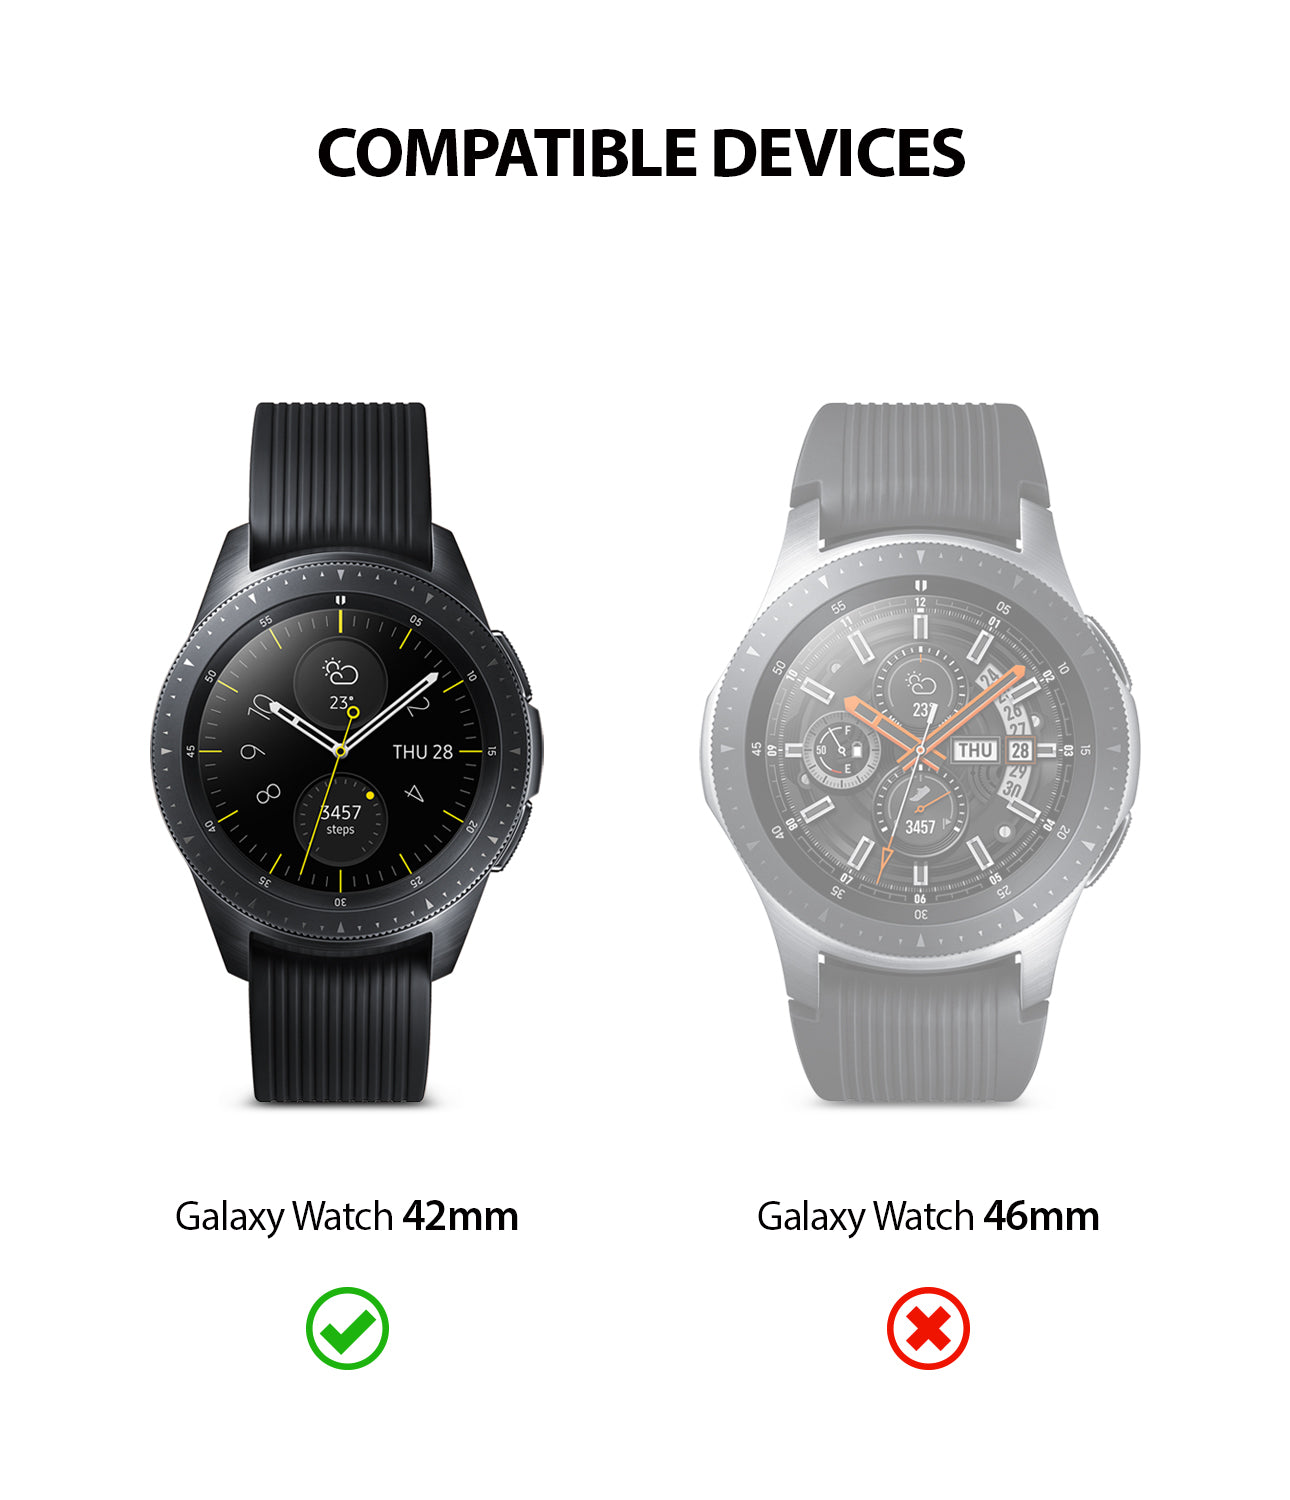 only compatible with galaxy watch 42mm